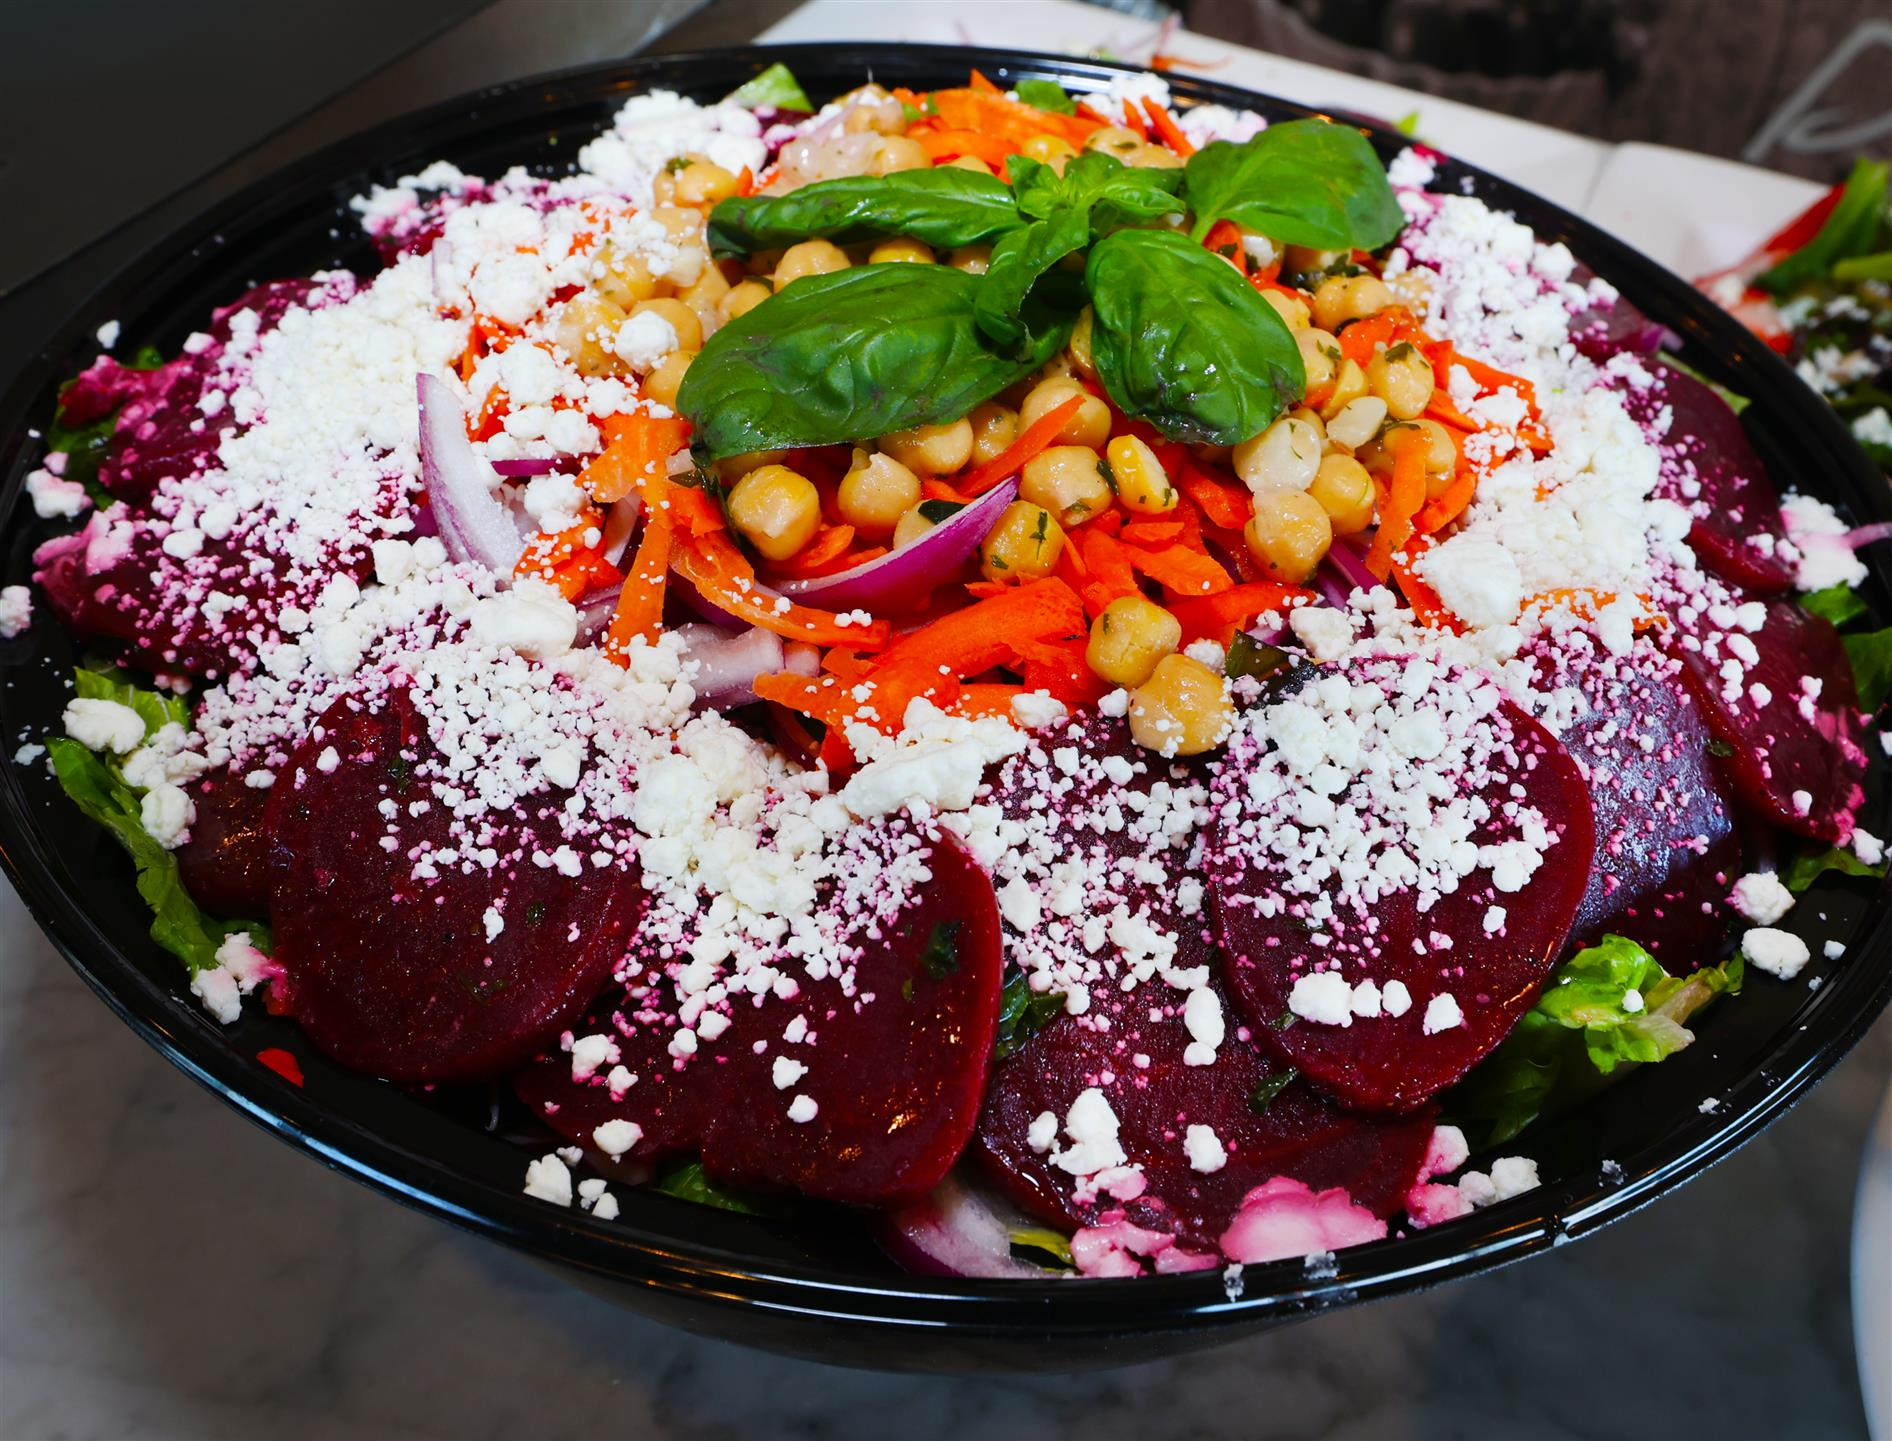 Beet Salad with Crispy heart of Romaine & Iceberg Lettuce Surrounded by Marinated Sliced Beets, Red Onions, Carrots, Goat Cheese & Chick Peas Drizzled with Balsamic Glaze